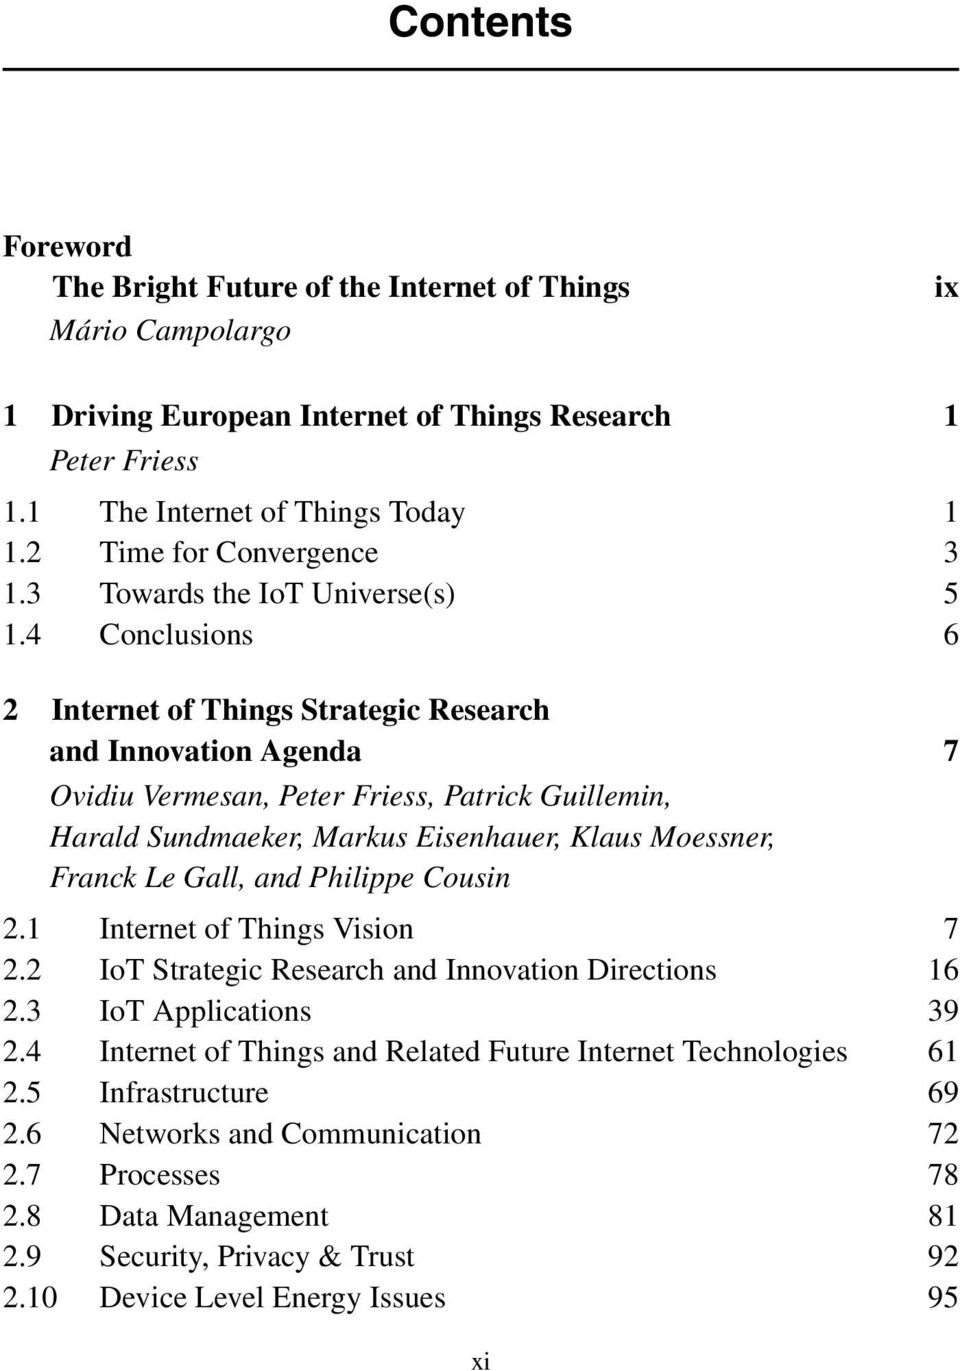 4 Conclusions 6 2 Internet of Things Strategic Research and Innovation Agenda 7 Ovidiu Vermesan, Peter Friess, Patrick Guillemin, Harald Sundmaeker, Markus Eisenhauer, Klaus Moessner, Franck Le Gall,